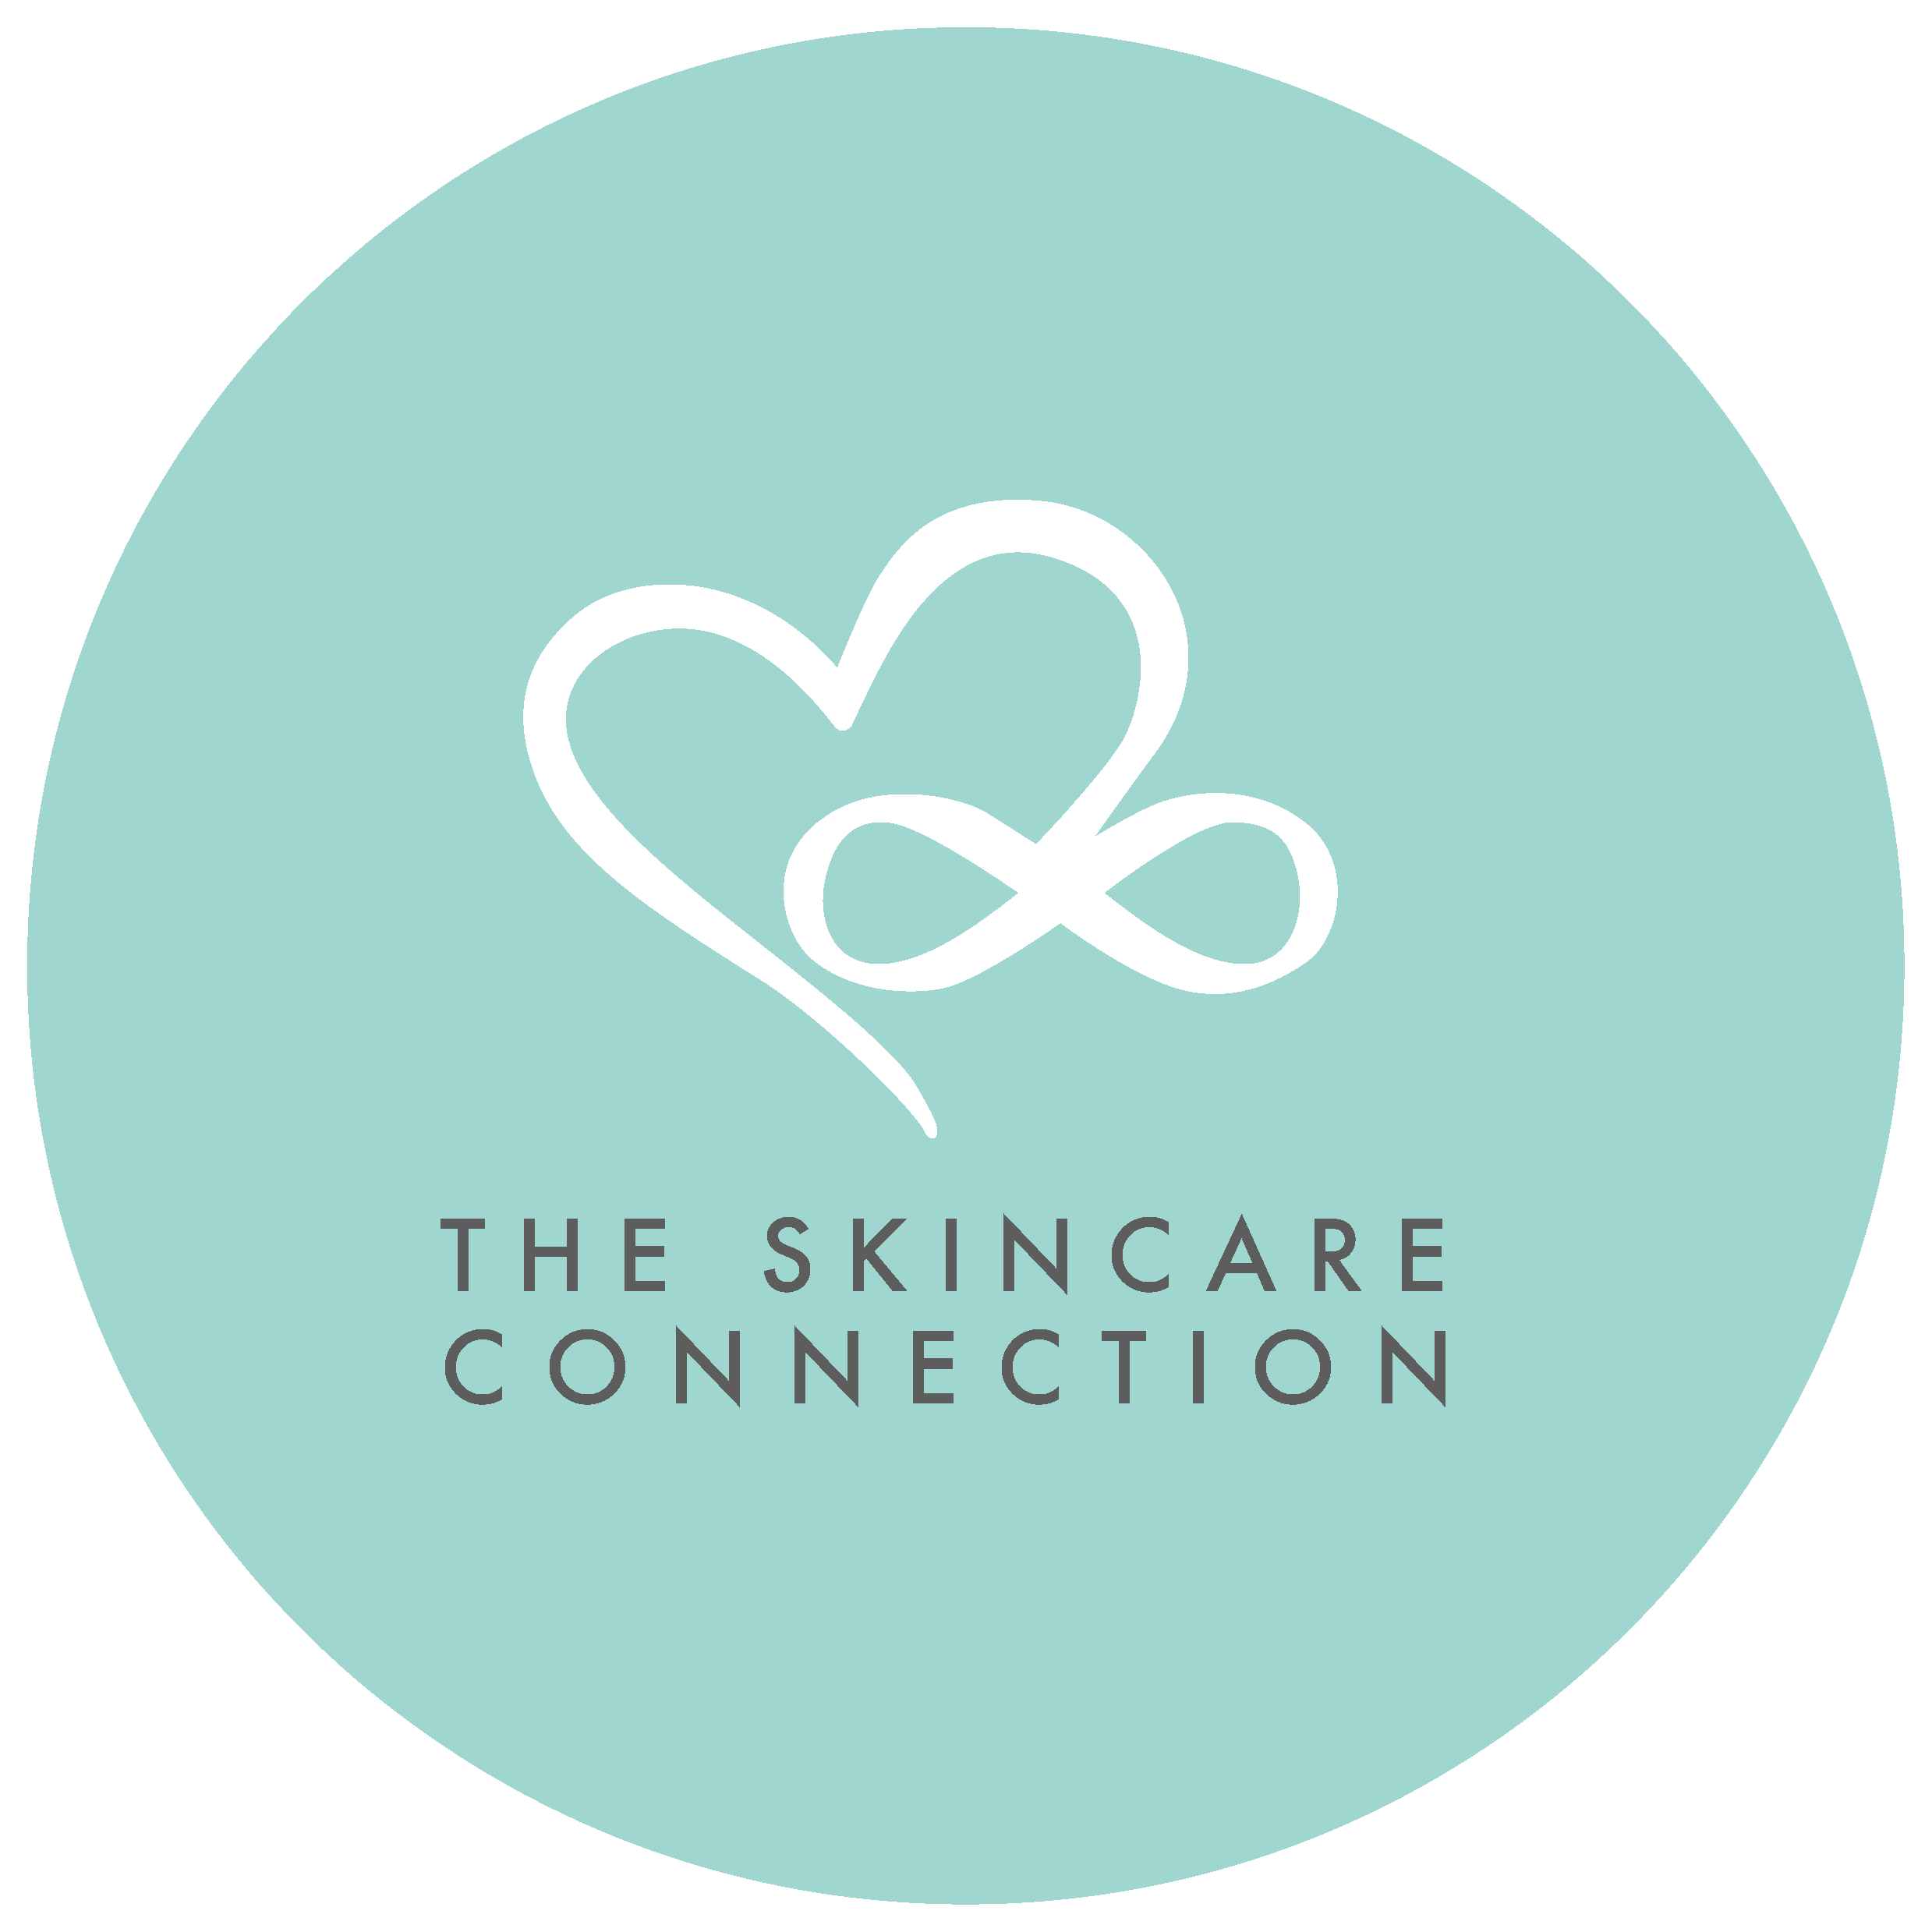 The Skincare Connection